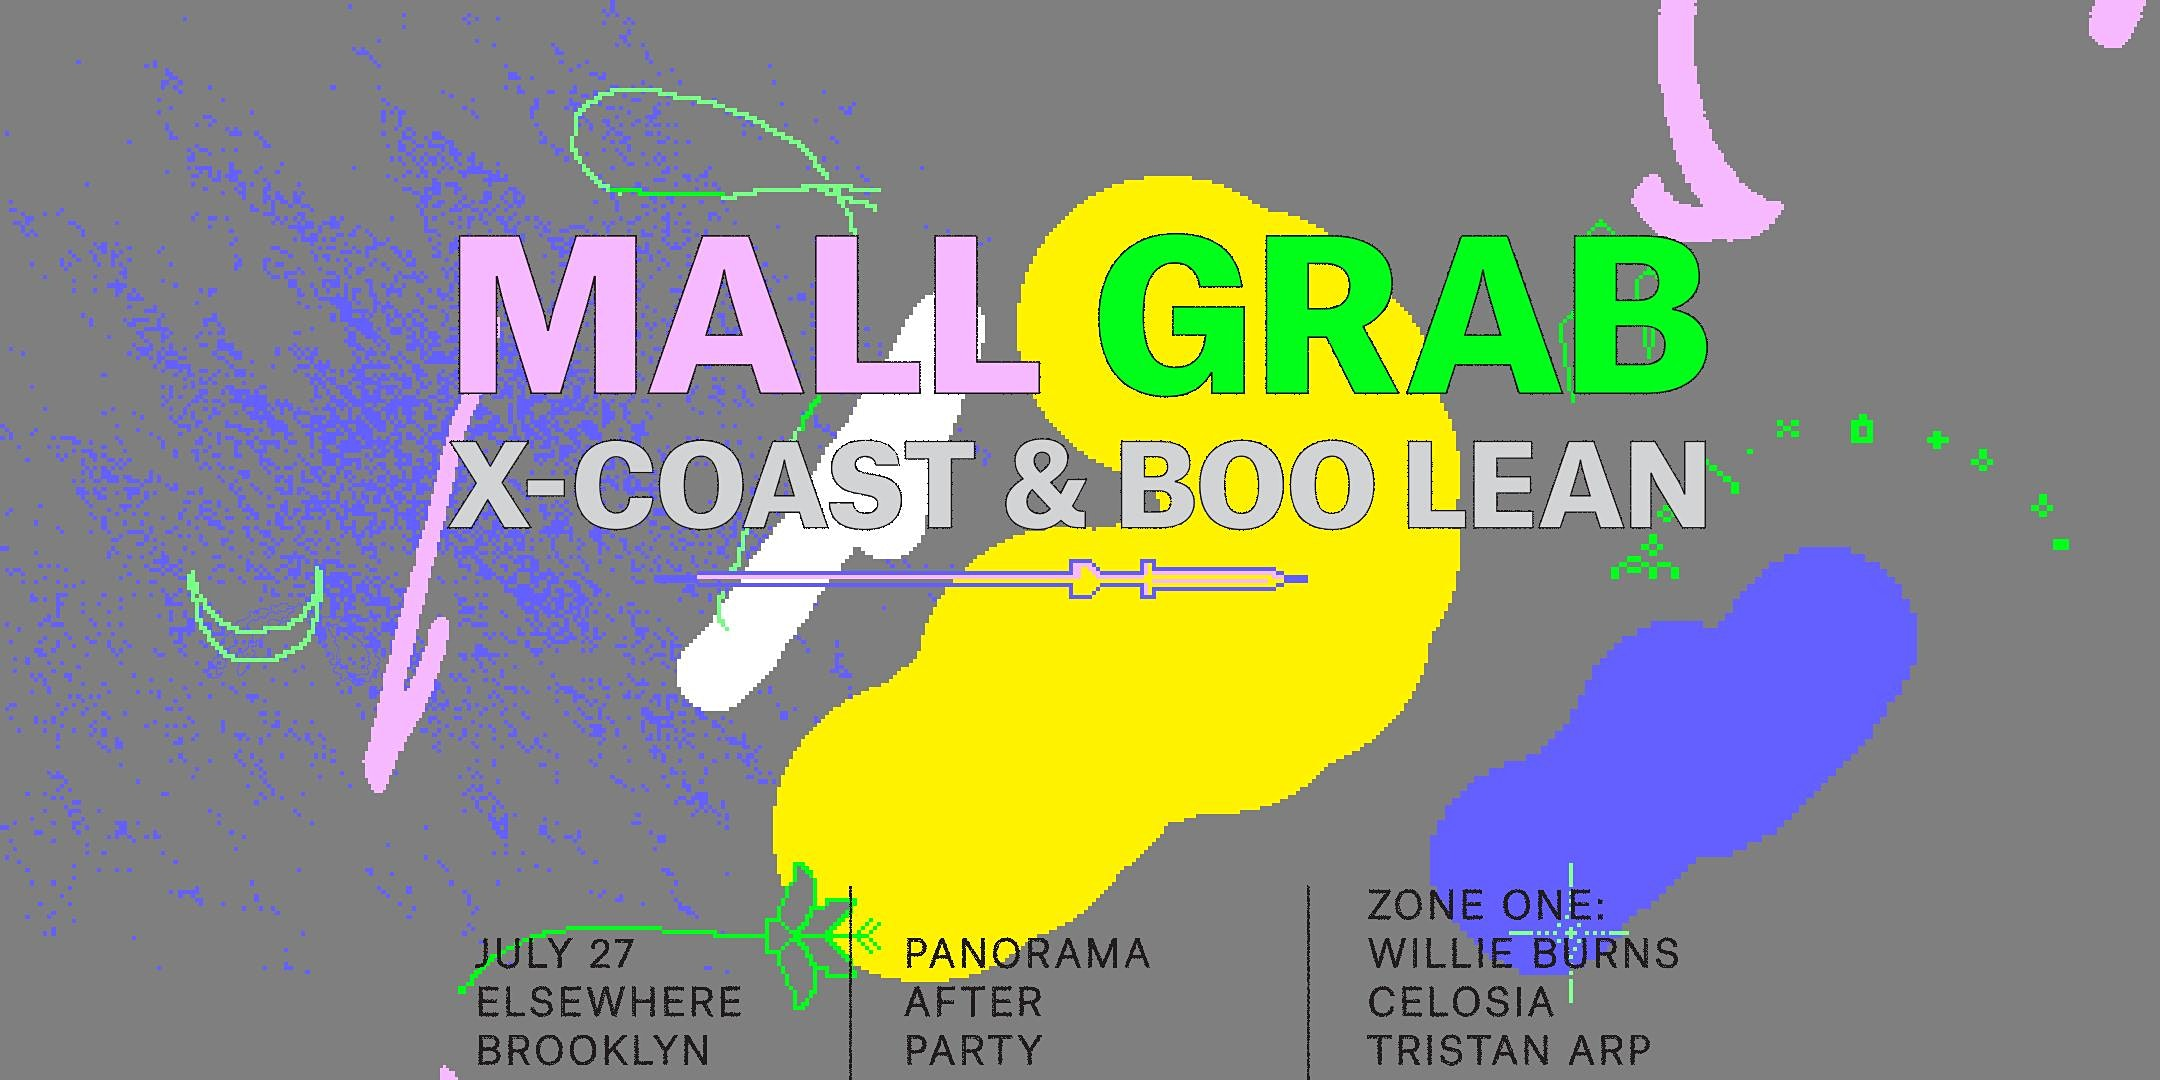 Mall Grab, X-Coast, Boo Lean, Willie Burns, Celosia & Tristan Arp (Panorama Afterparty)